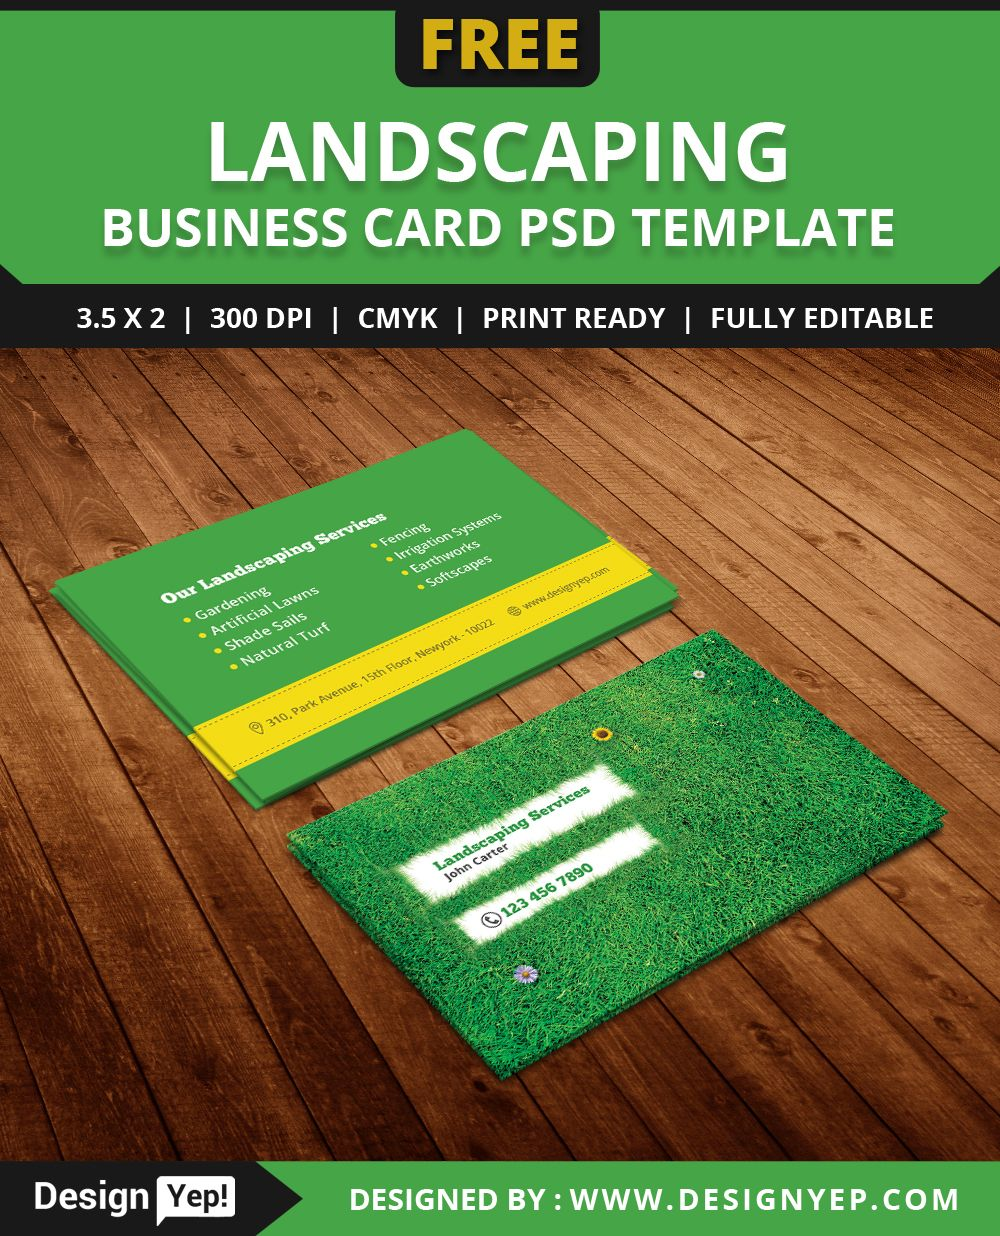 Free landscaping business card template psd free business card free landscaping business card template psd flashek